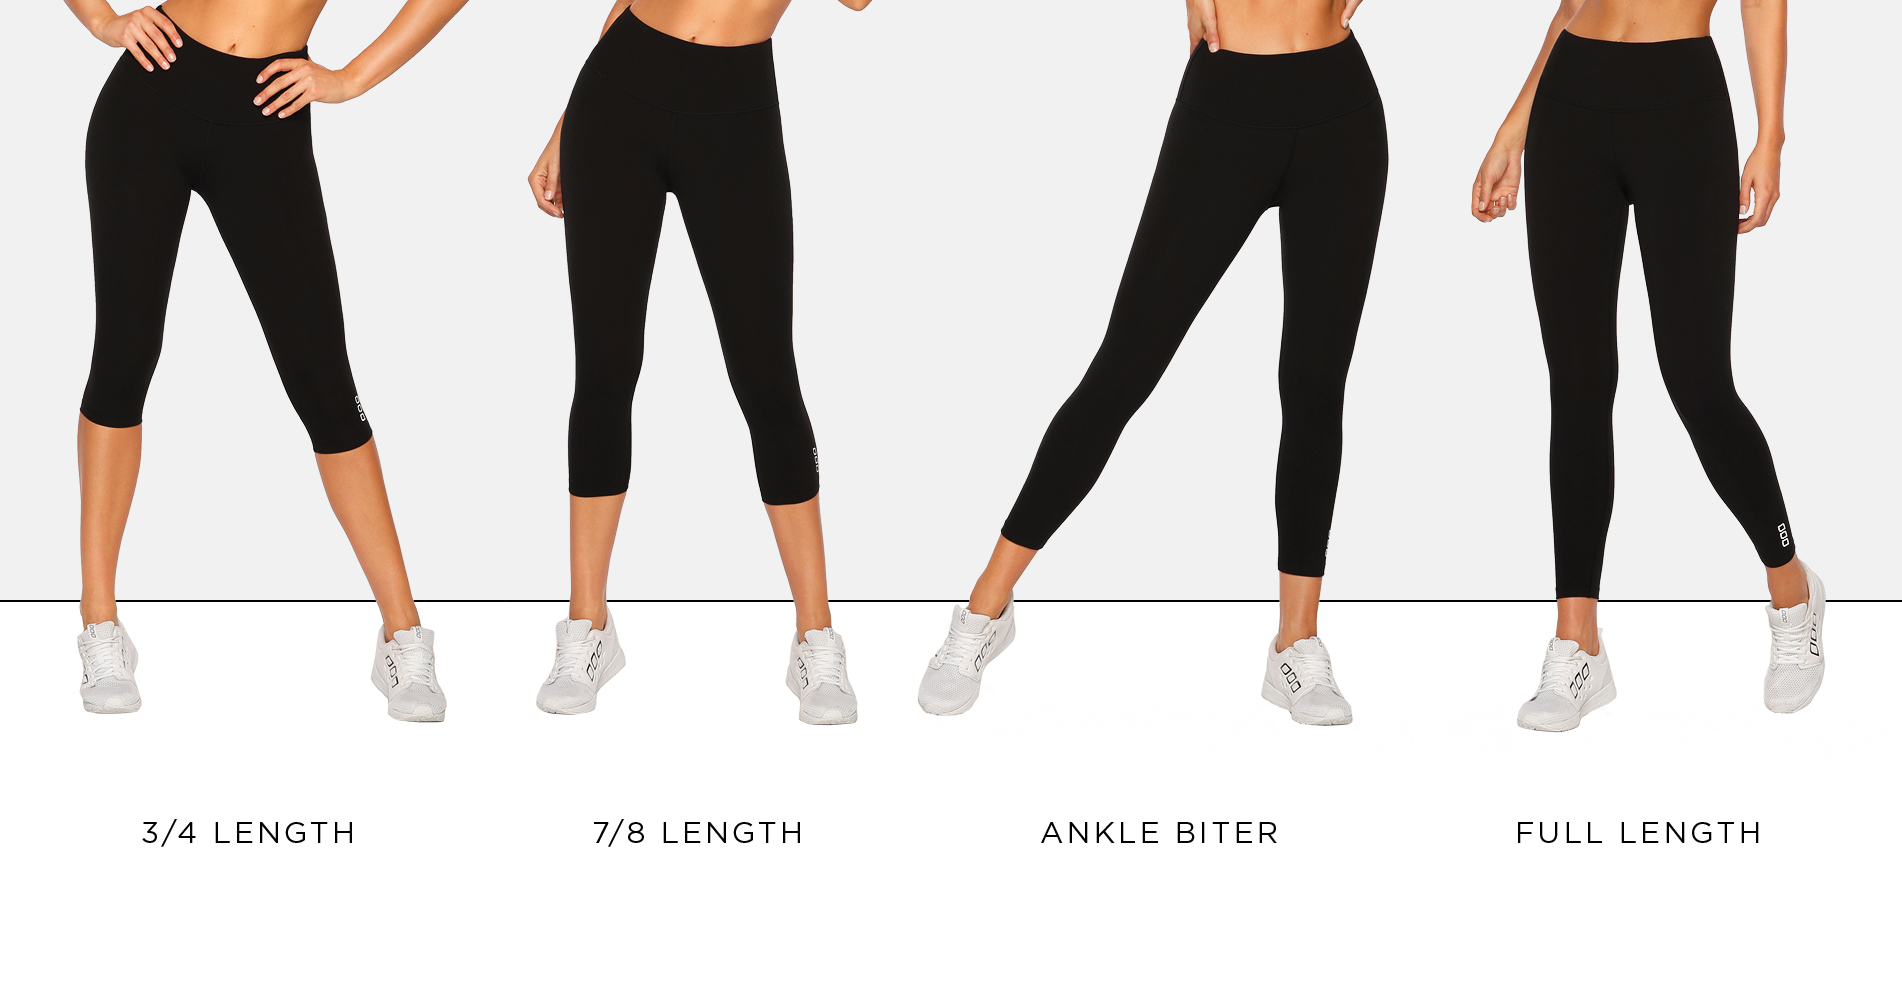 Lorna Jane tights and leggings lengths